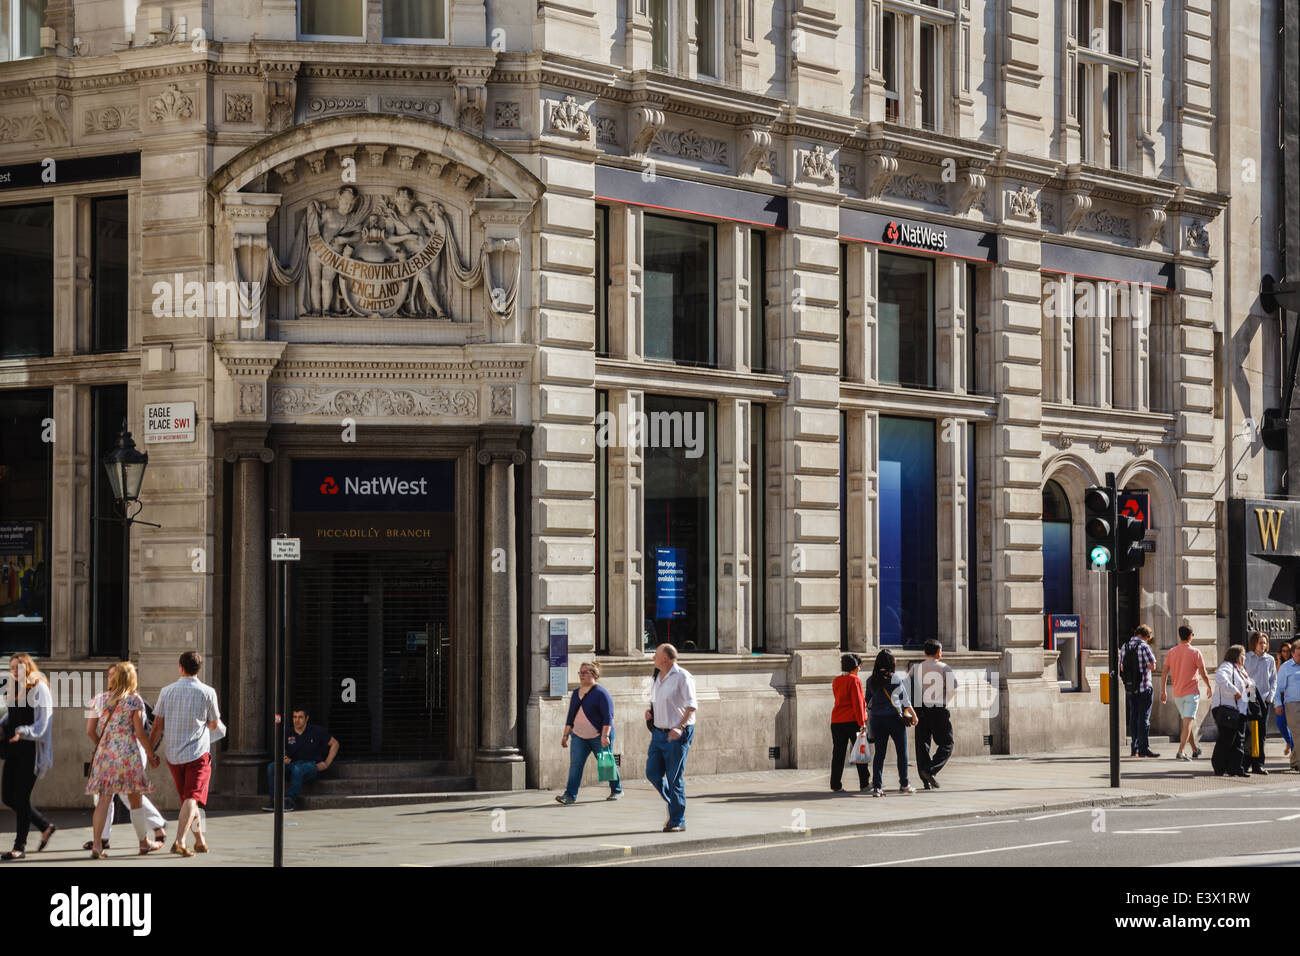 NatWest Bank Piccadilly Branch London SW1 - Stock Image